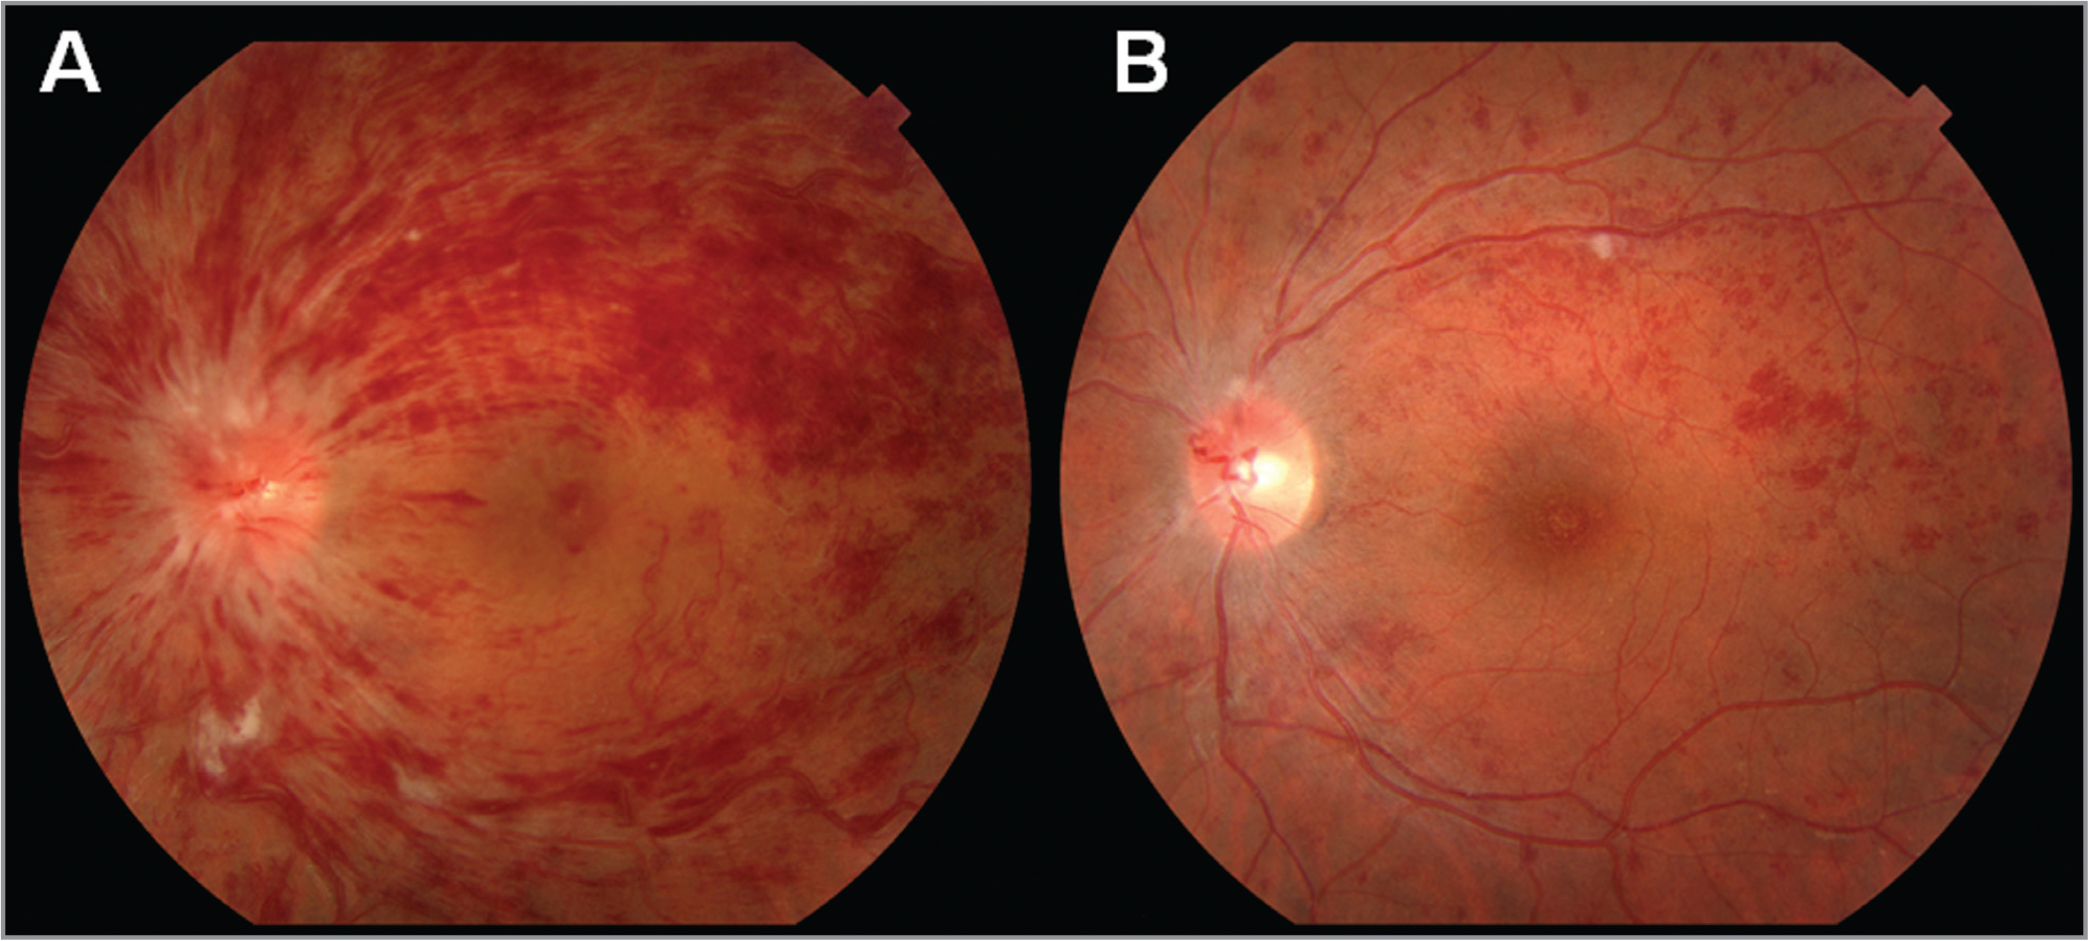 Color fundus images of a central retinal vein occlusion in the left eye. (A) At initial presentation, the fundus images revealed diffused pre-retinal and intraretinal hemorrhages associated with tortuous vessels, cotton-wool spots along the arcades, and optic disc edema. (B) Four weeks after a single intravitreal injection of steroid at the first visit, the fundus image showed resolving retinal hemorrhages with a residual cotton-wool spot along the superior arcade.